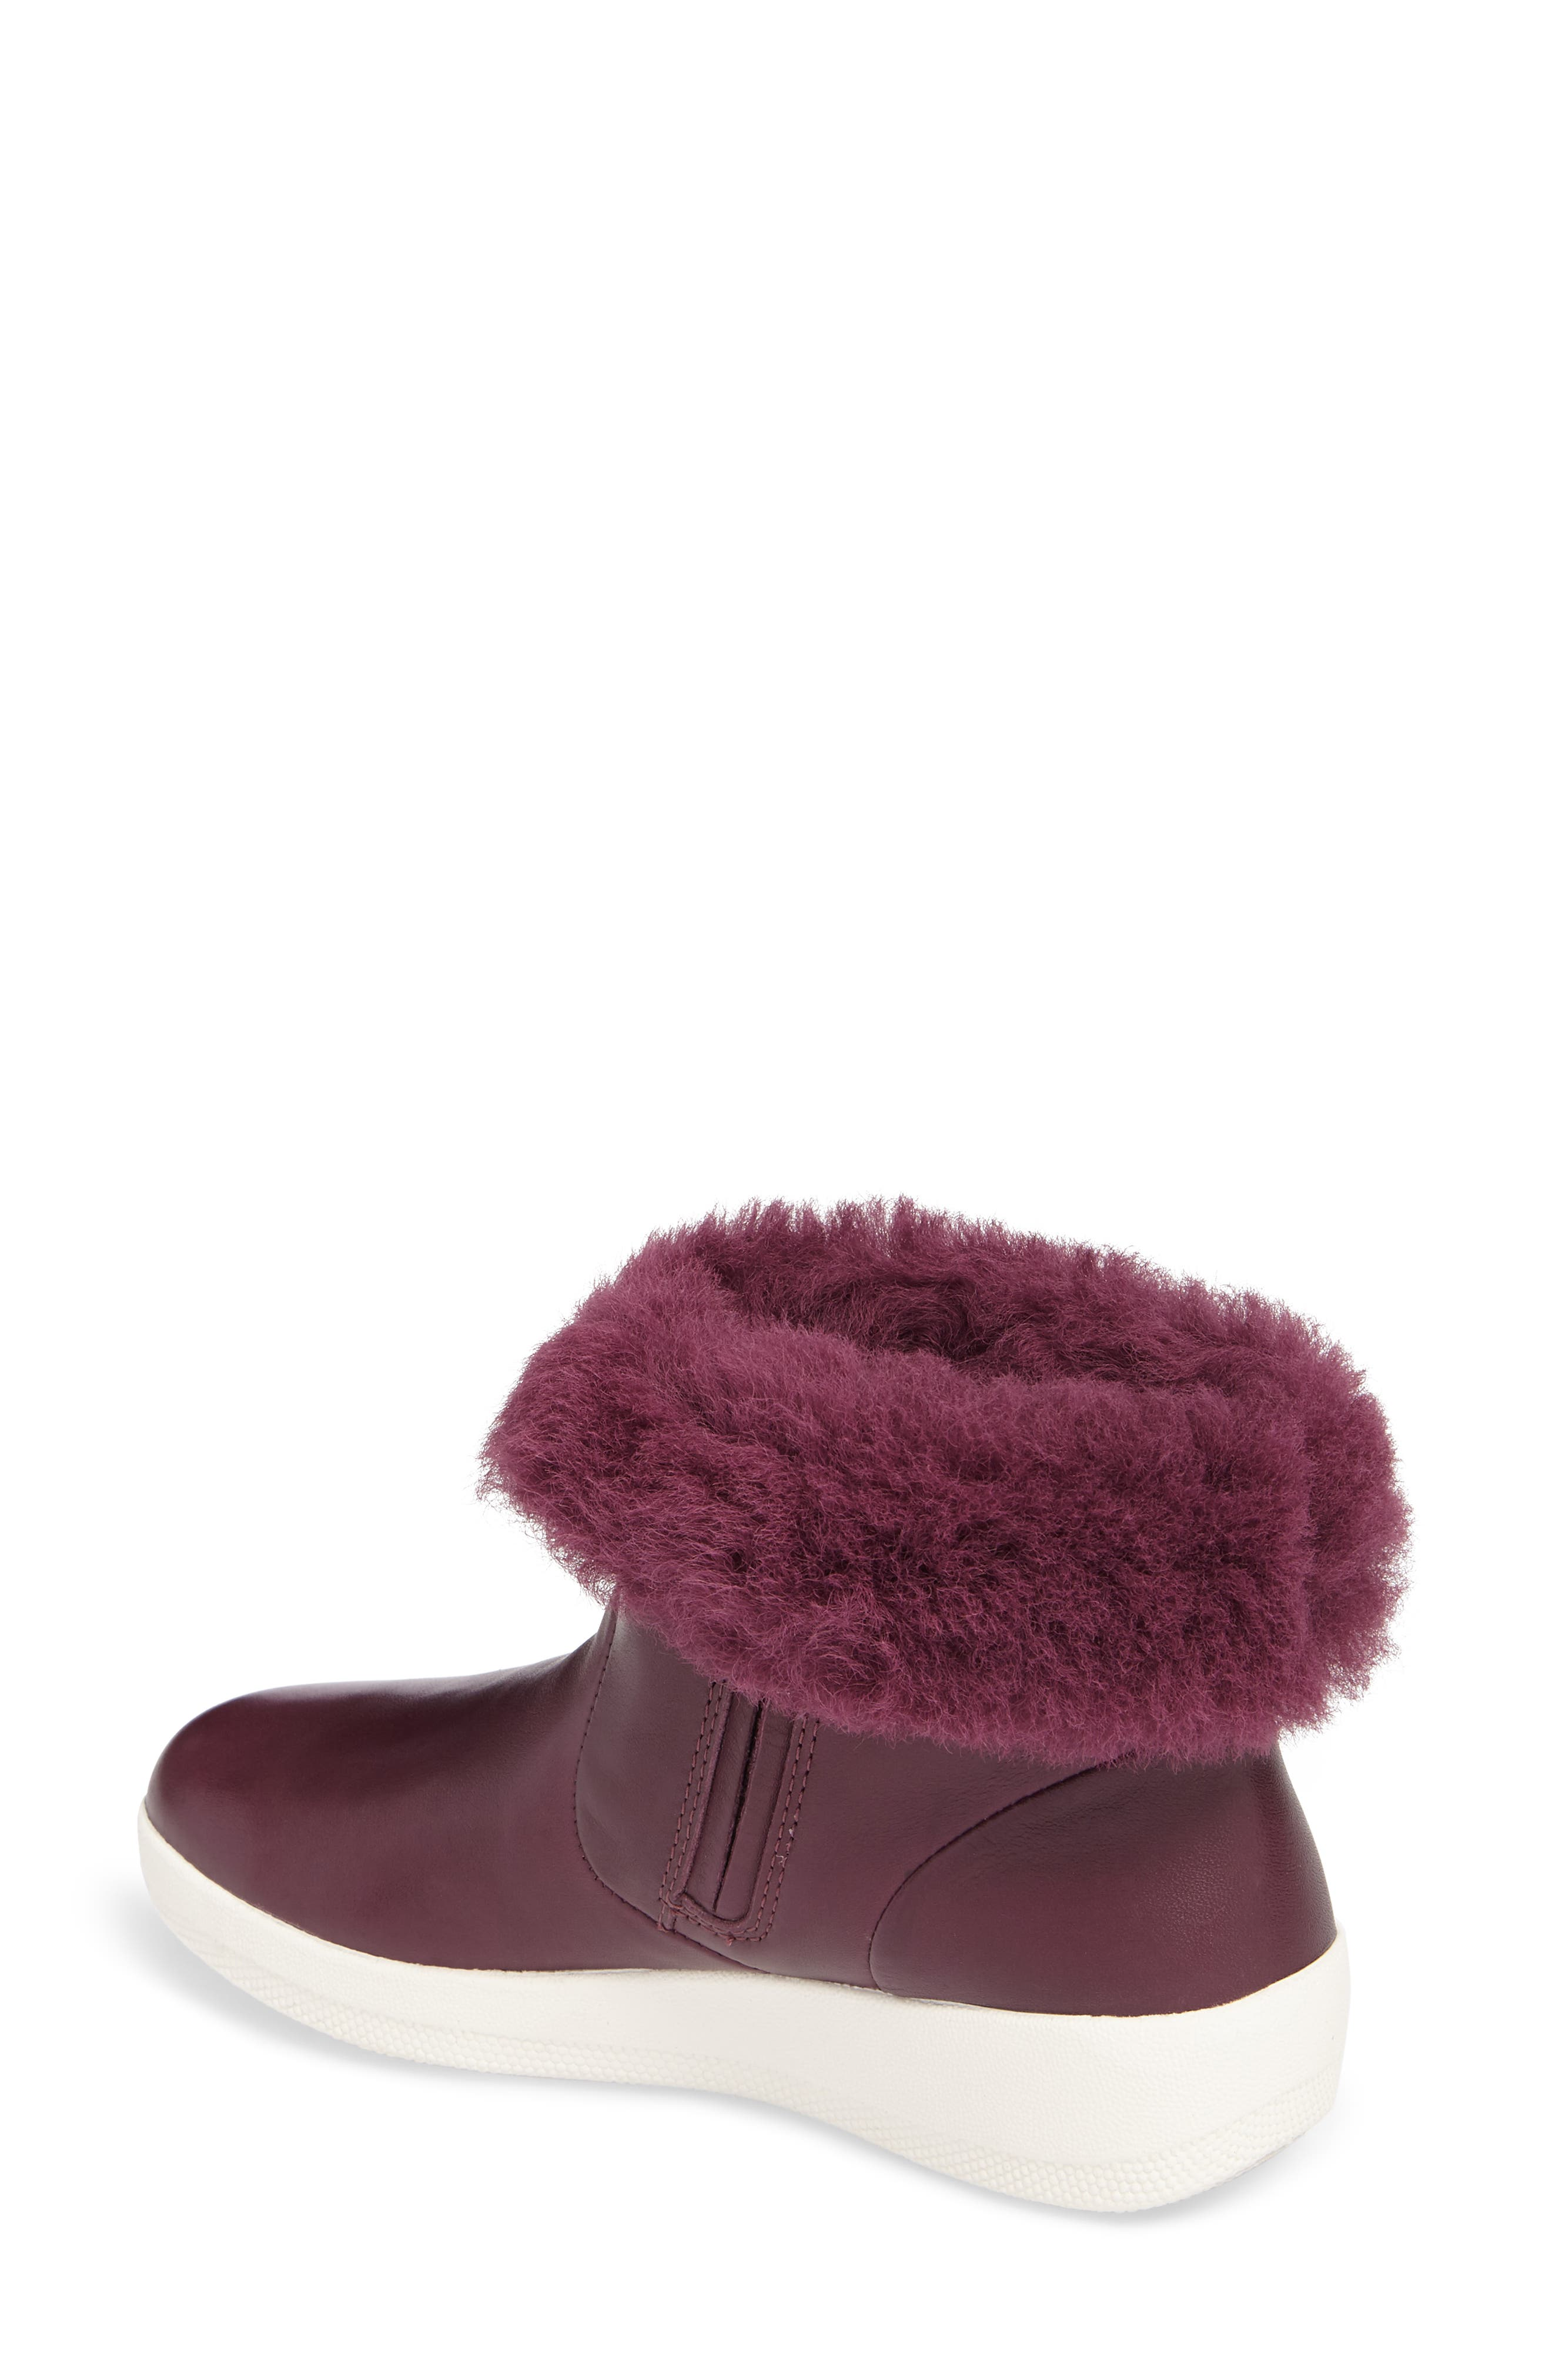 Skatebootie<sup>™</sup> with Genuine Shearling Cuff,                             Alternate thumbnail 2, color,                             Deep Plum